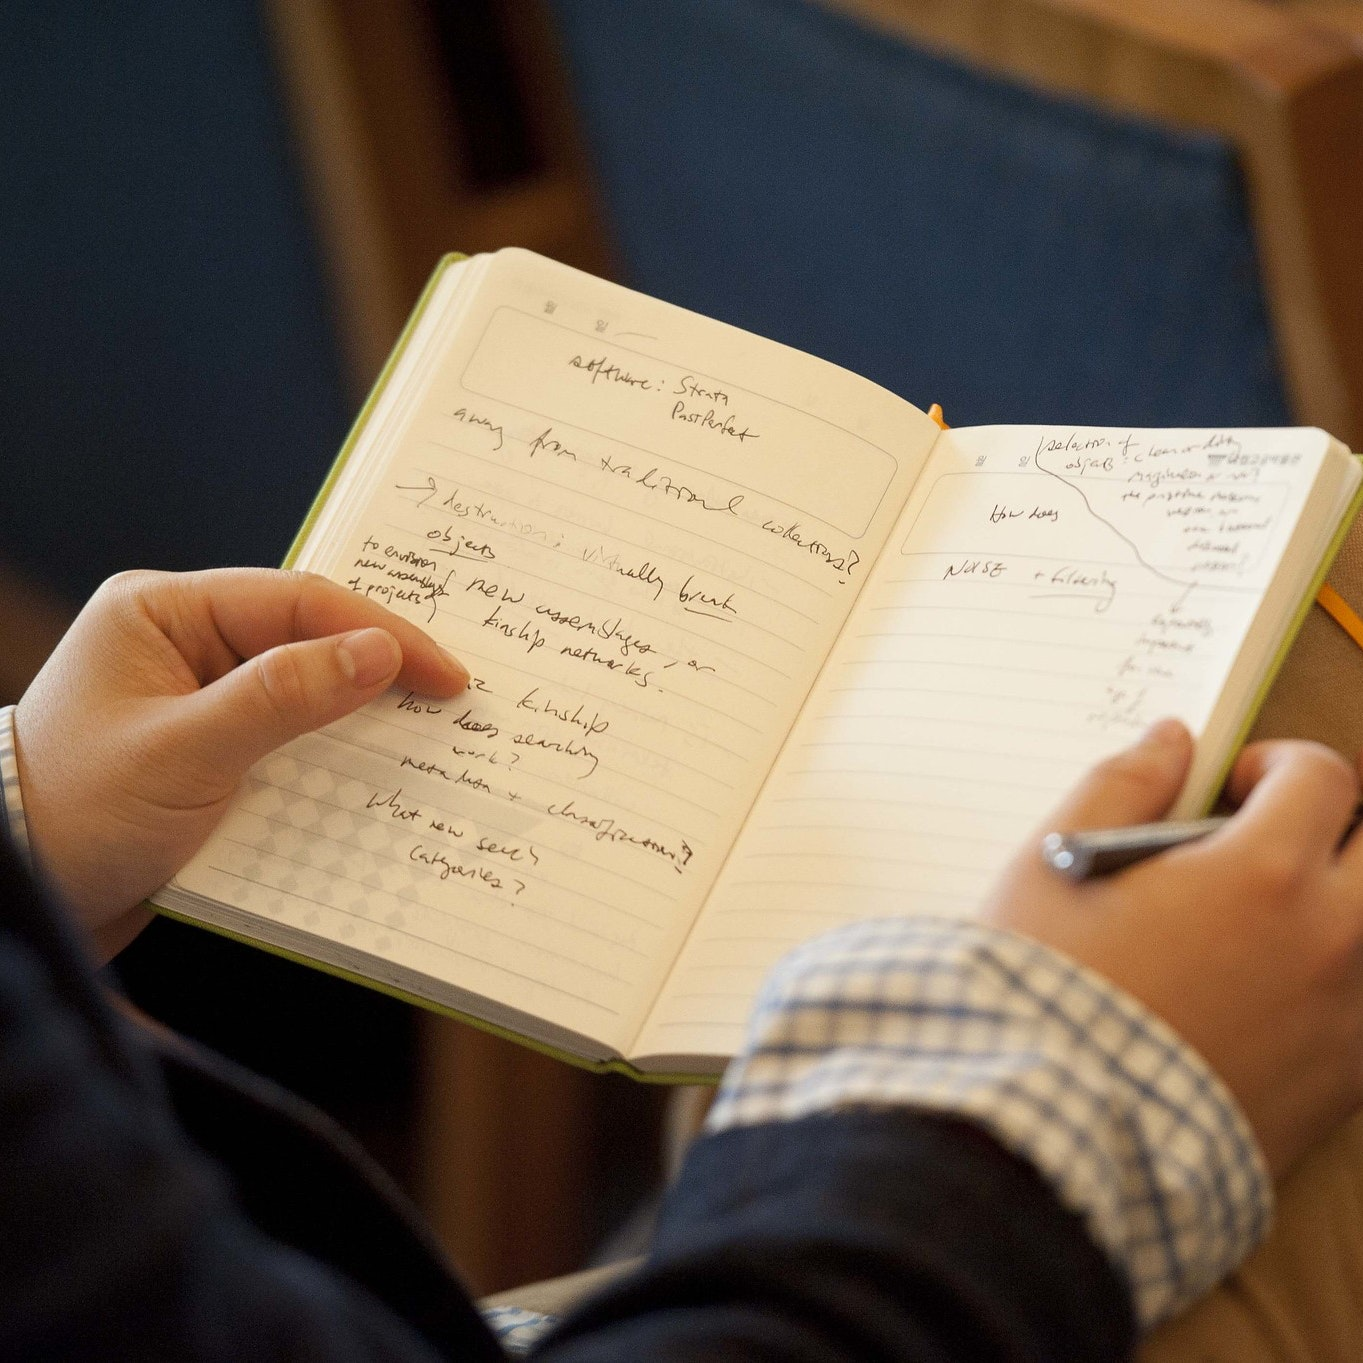 A person holds open a journal with notes on both pages.